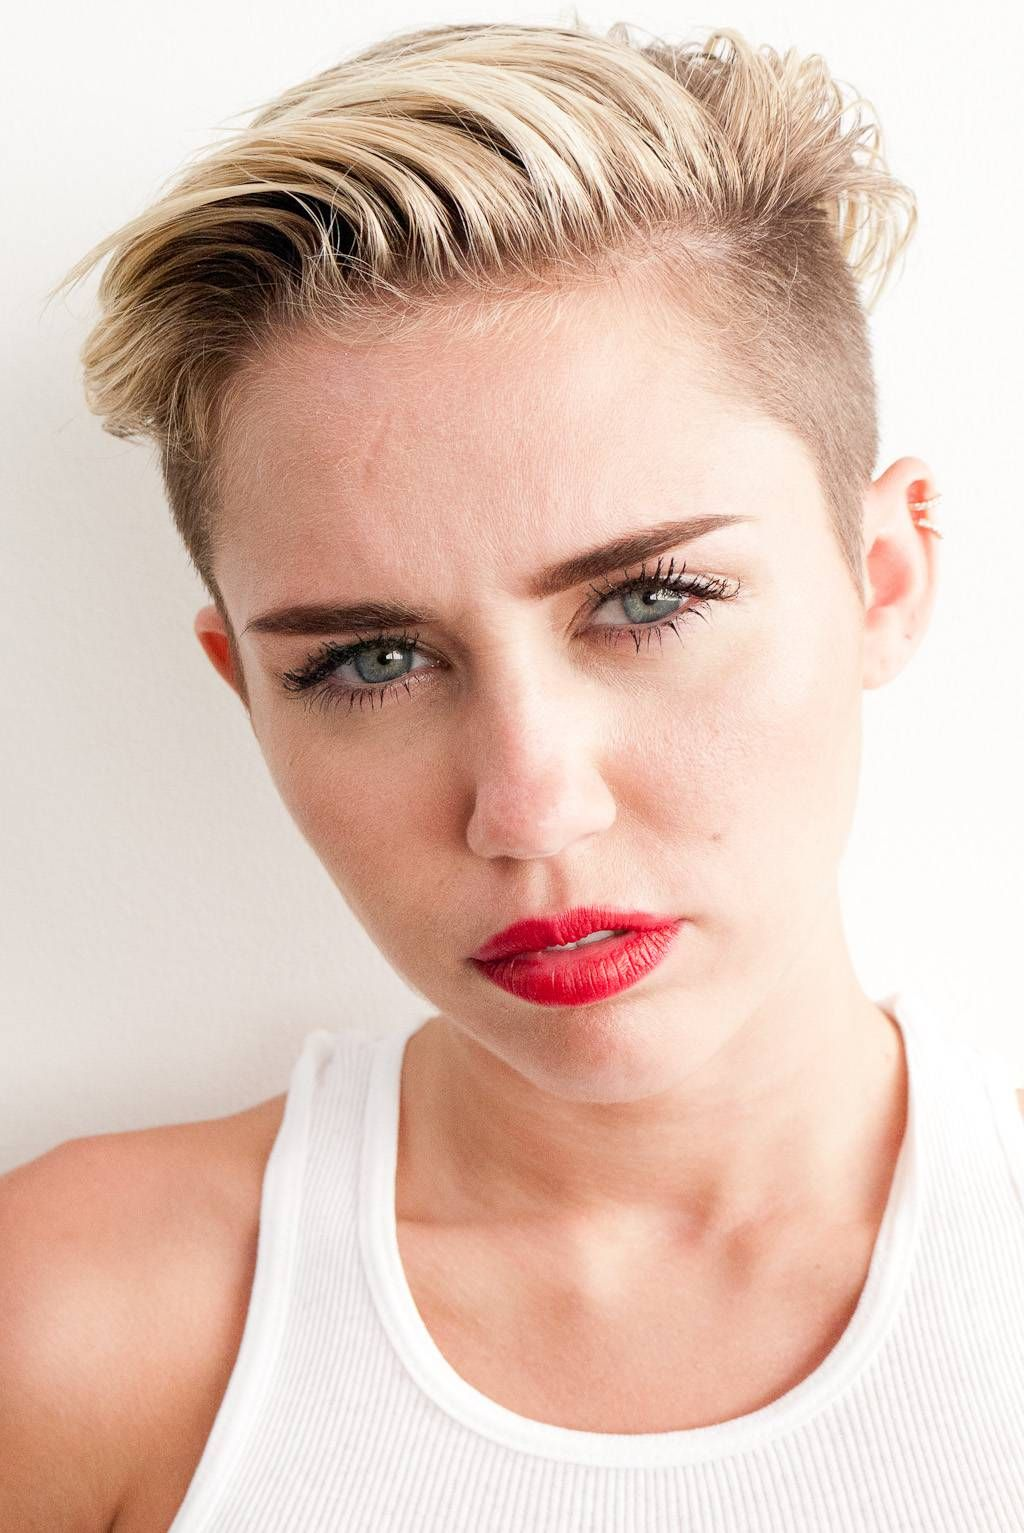 Miley Cyrus Miley Cyrus Wrecking Ball Pinterest Miley Cyrus